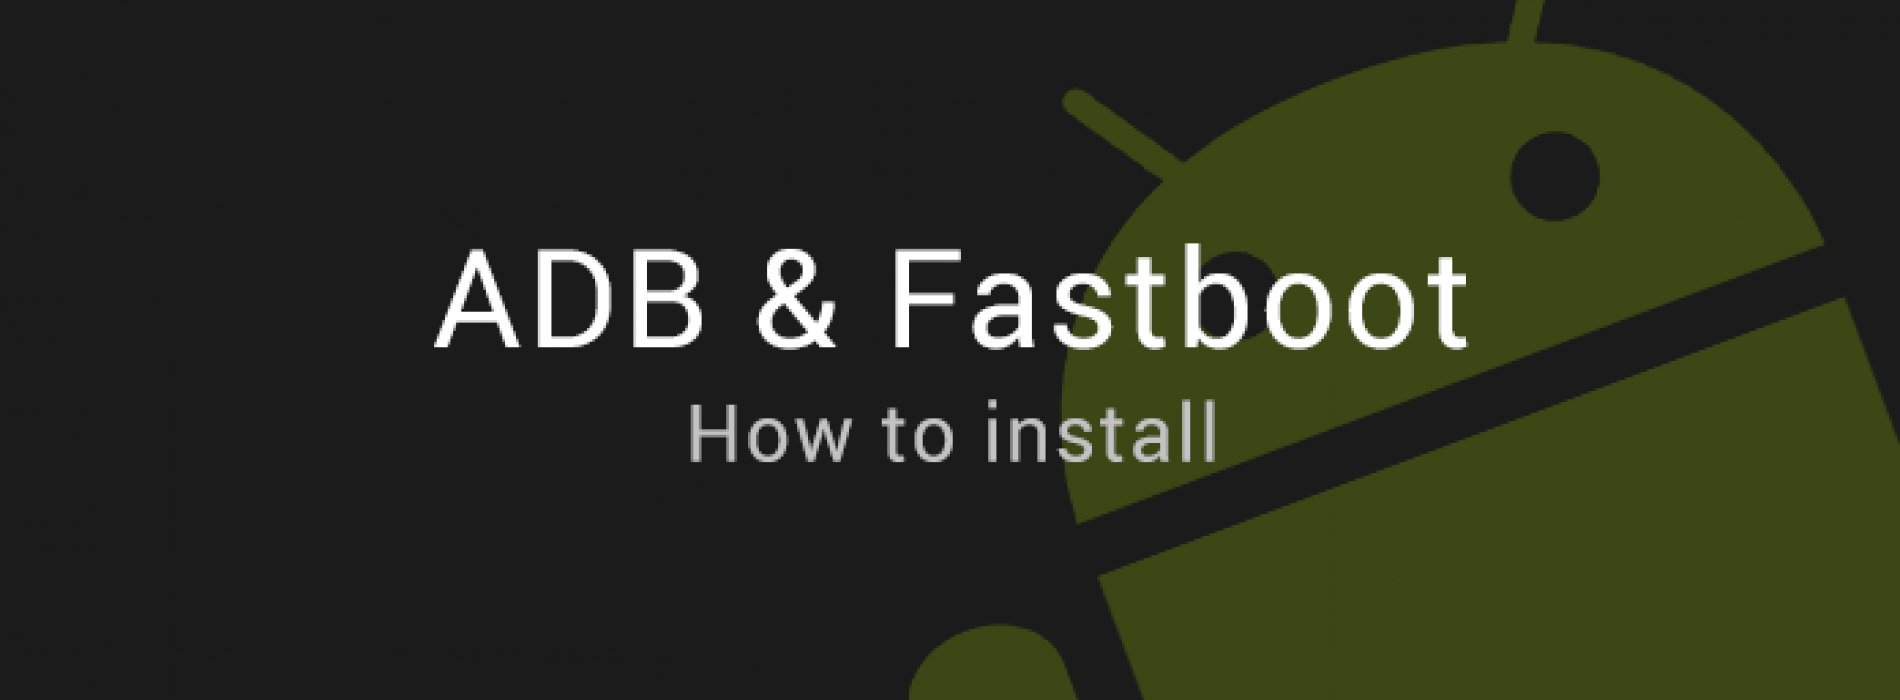 How to Install ADB Fastboot on Linux